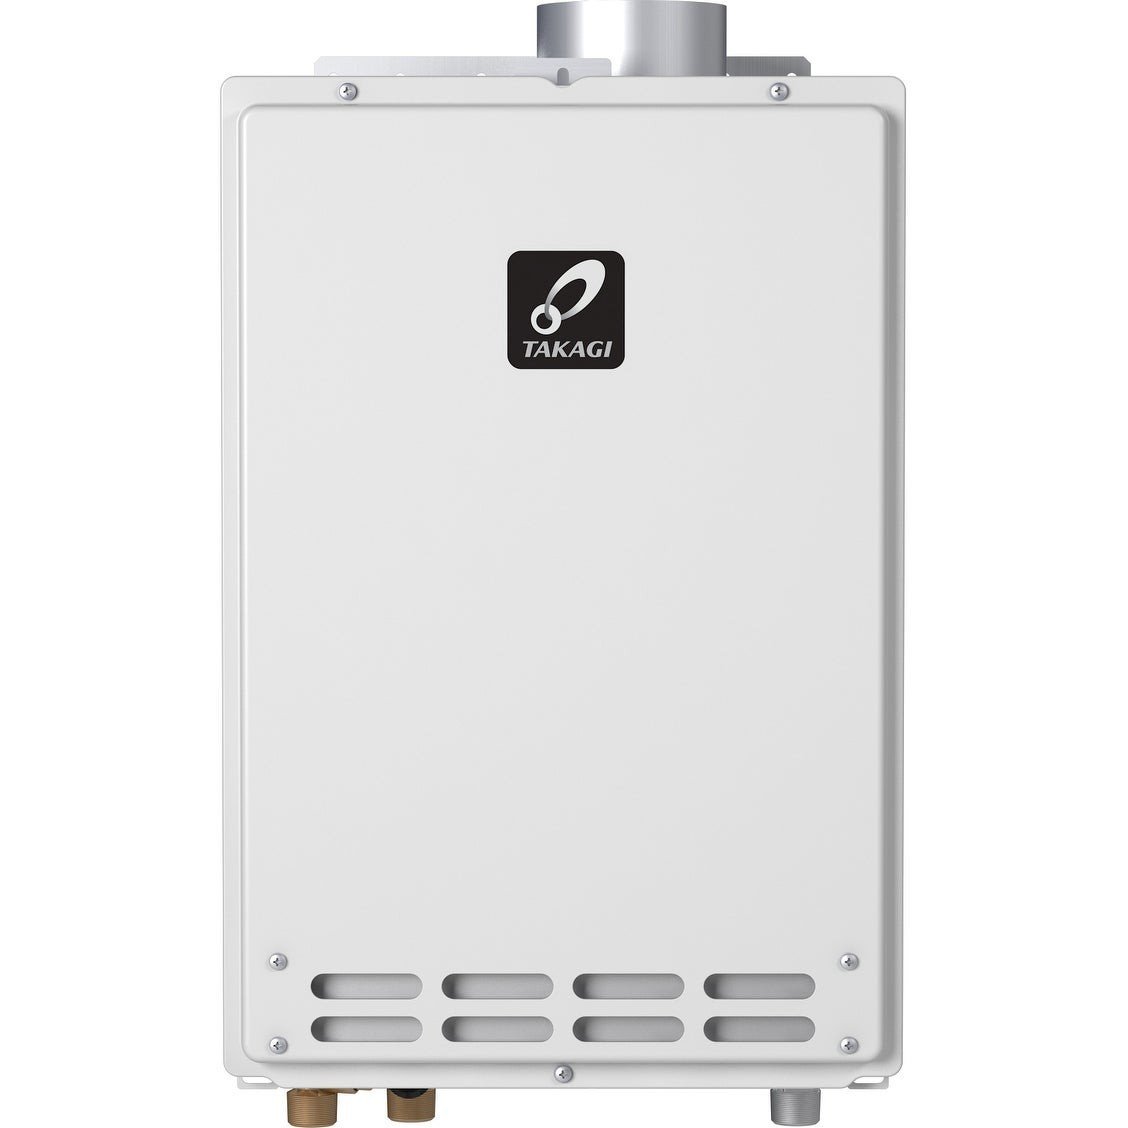 Takagi T KJr2 IN NG 6 6 GPM Natural Gas Indoor Tankless Water Heater